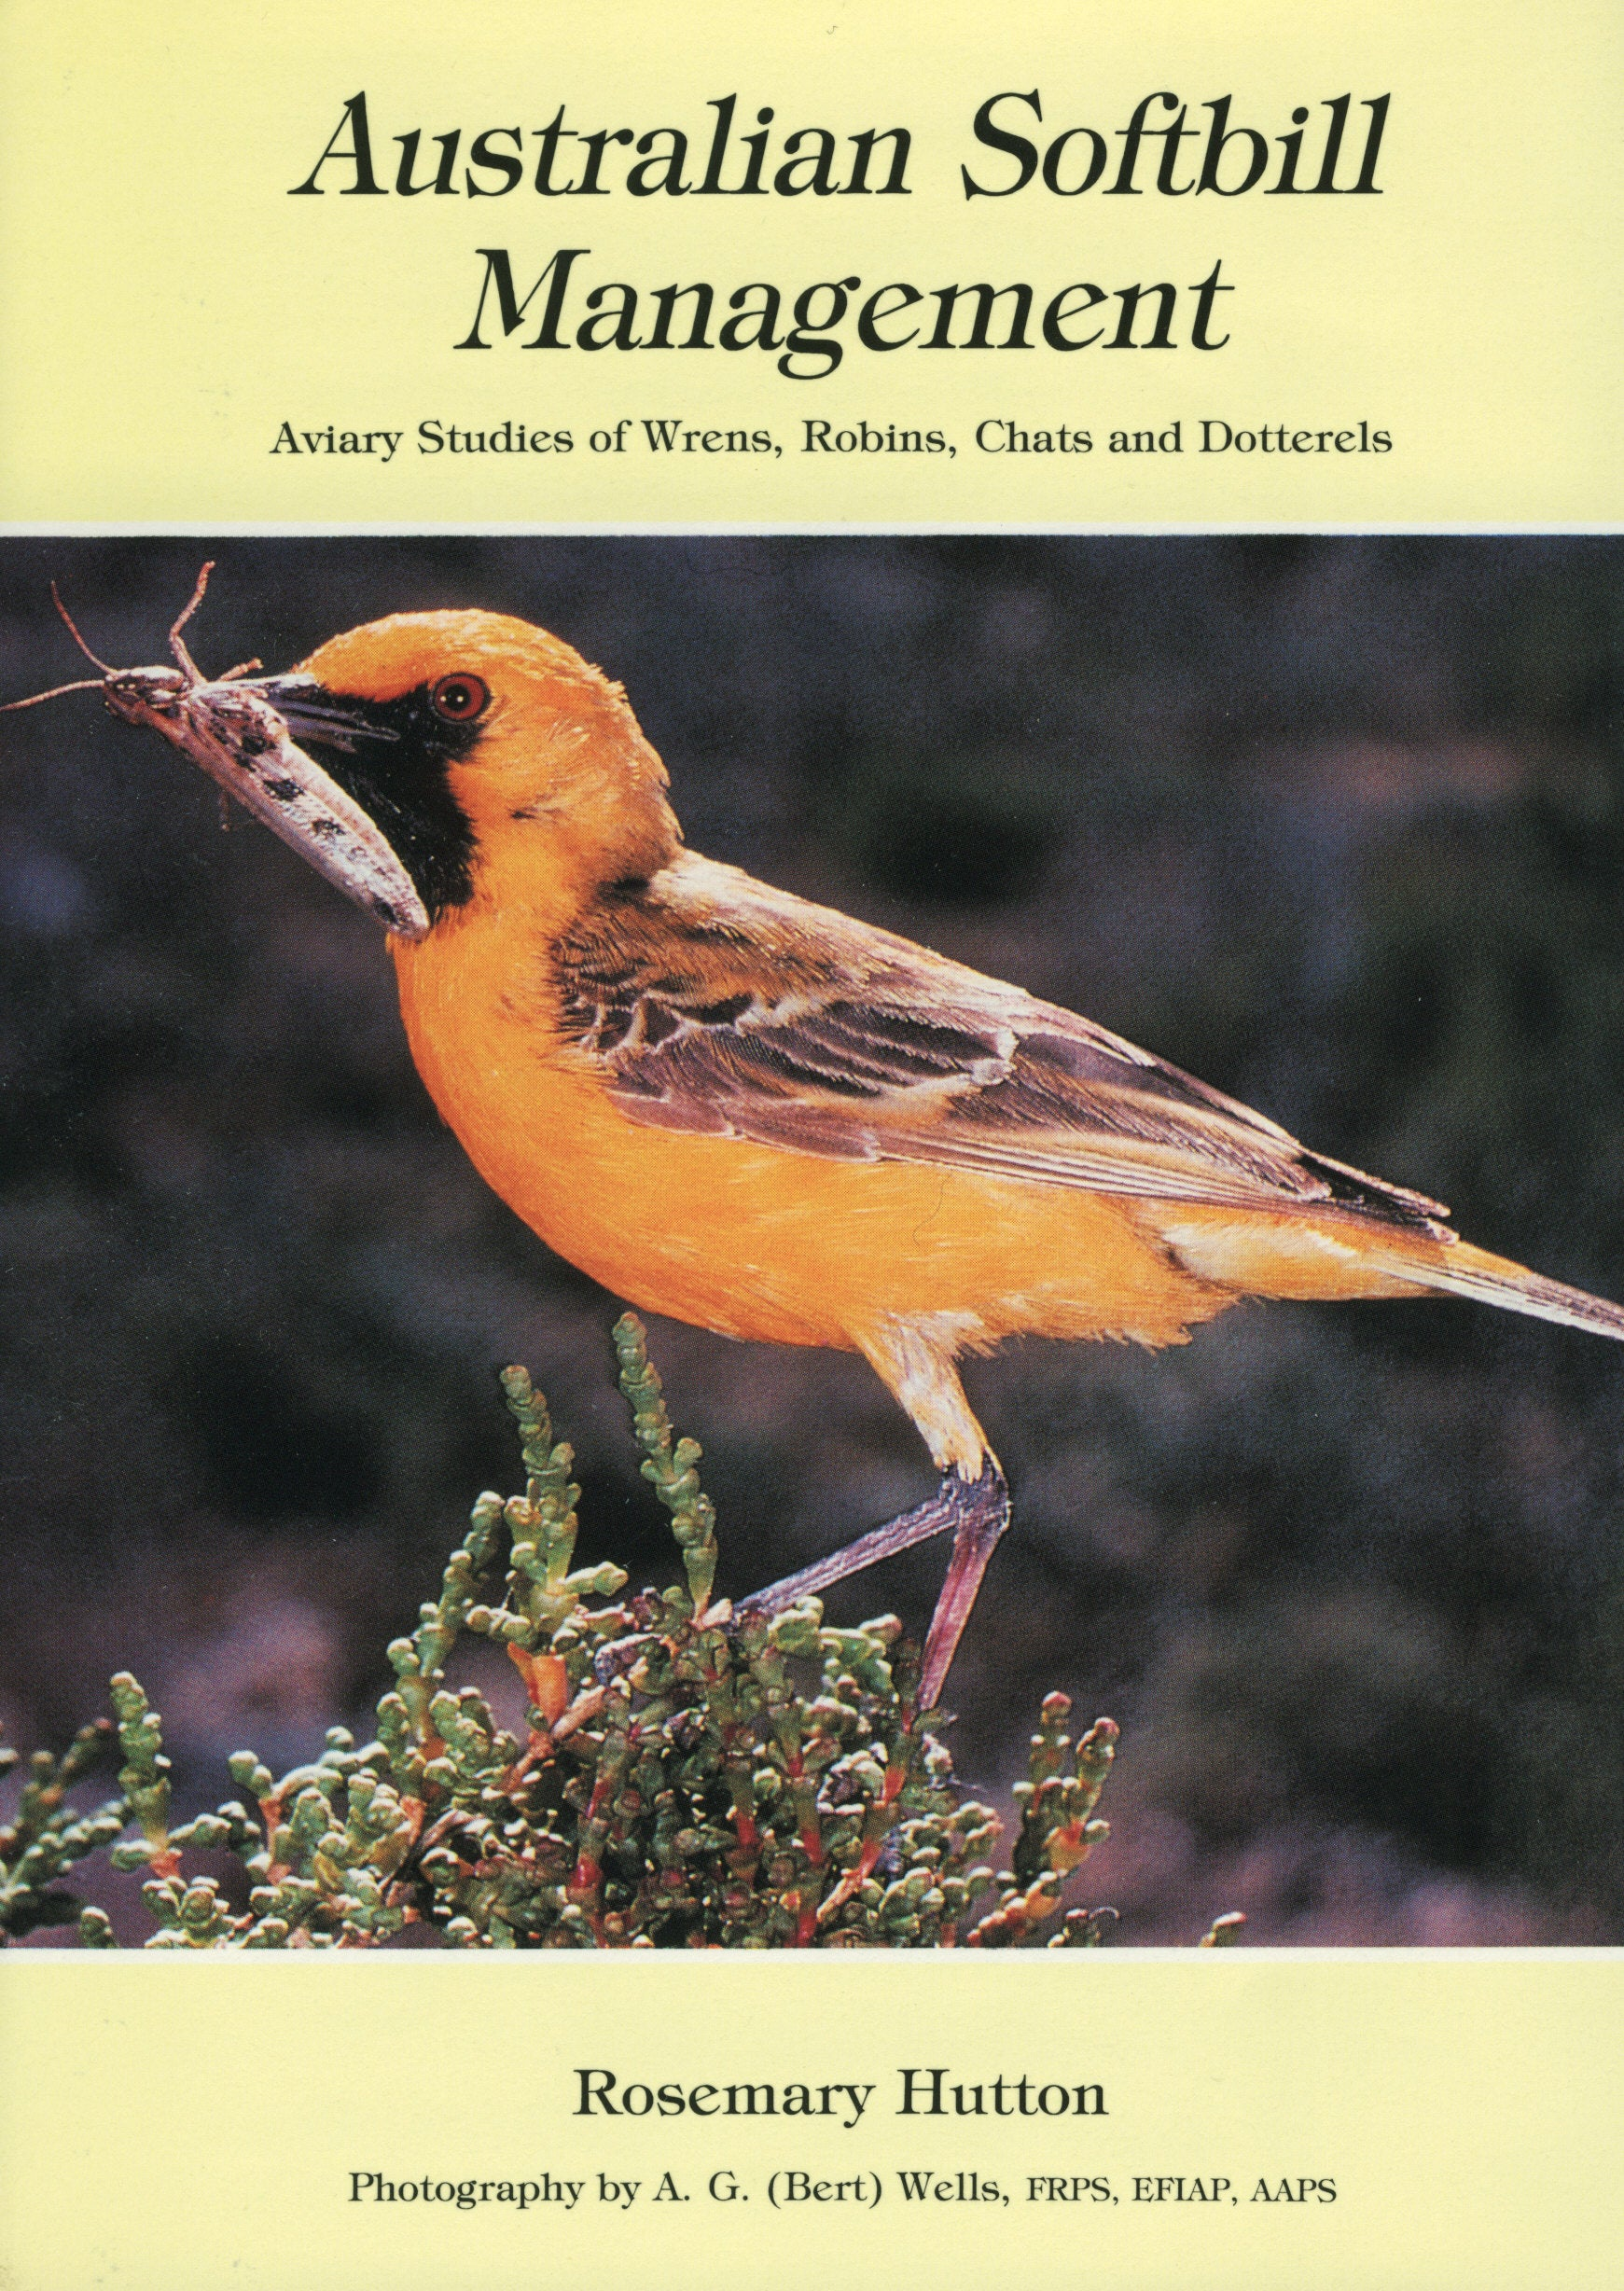 Australian Softbill Management:—Aviary Studies of Wrens, Robins, Chats and Dotterels